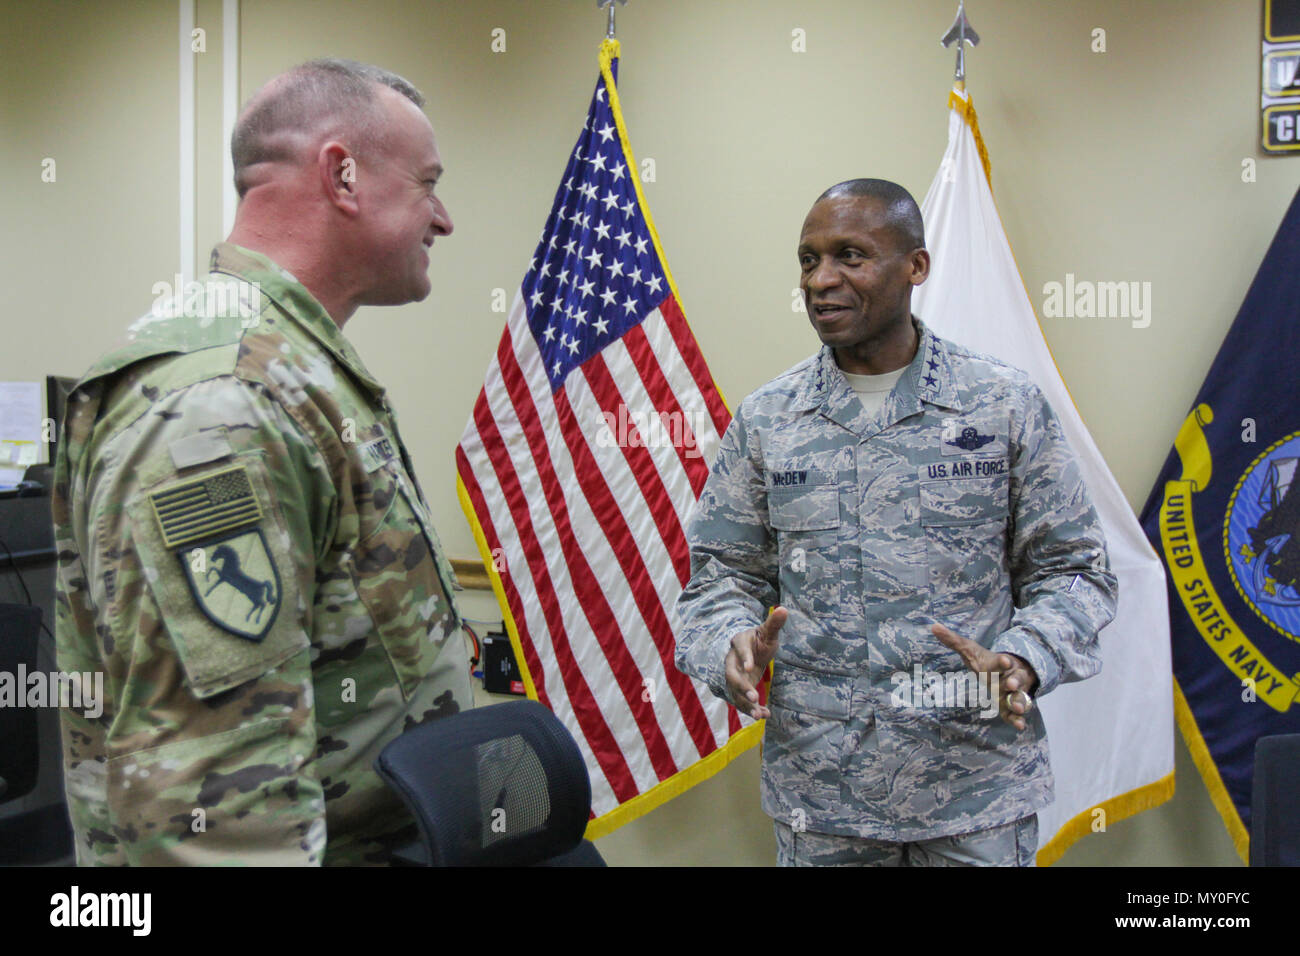 Gen. Darren W. McDew, commanding general of U.S. Transportation Command, (right) speaks with Brig. Gen. Robert D. Harter, commanding general of the 316th Sustainment Command (Expeditionary), an Army Reserve unit based out of Coraopolis, Pa., (left) about transportation and distribution of materials challenges in the U.S. Central Command (CENTCOM) area of responsibility at Camp Arifjan, Kuwait, Dec. 13, 2016. The realignment of joint forces has sped up the process of troops receiving vital supplies in the CENTCOM area of responsibility. (U.S. Army Photo by Staff Sgt. Dalton Smith) - Stock Image